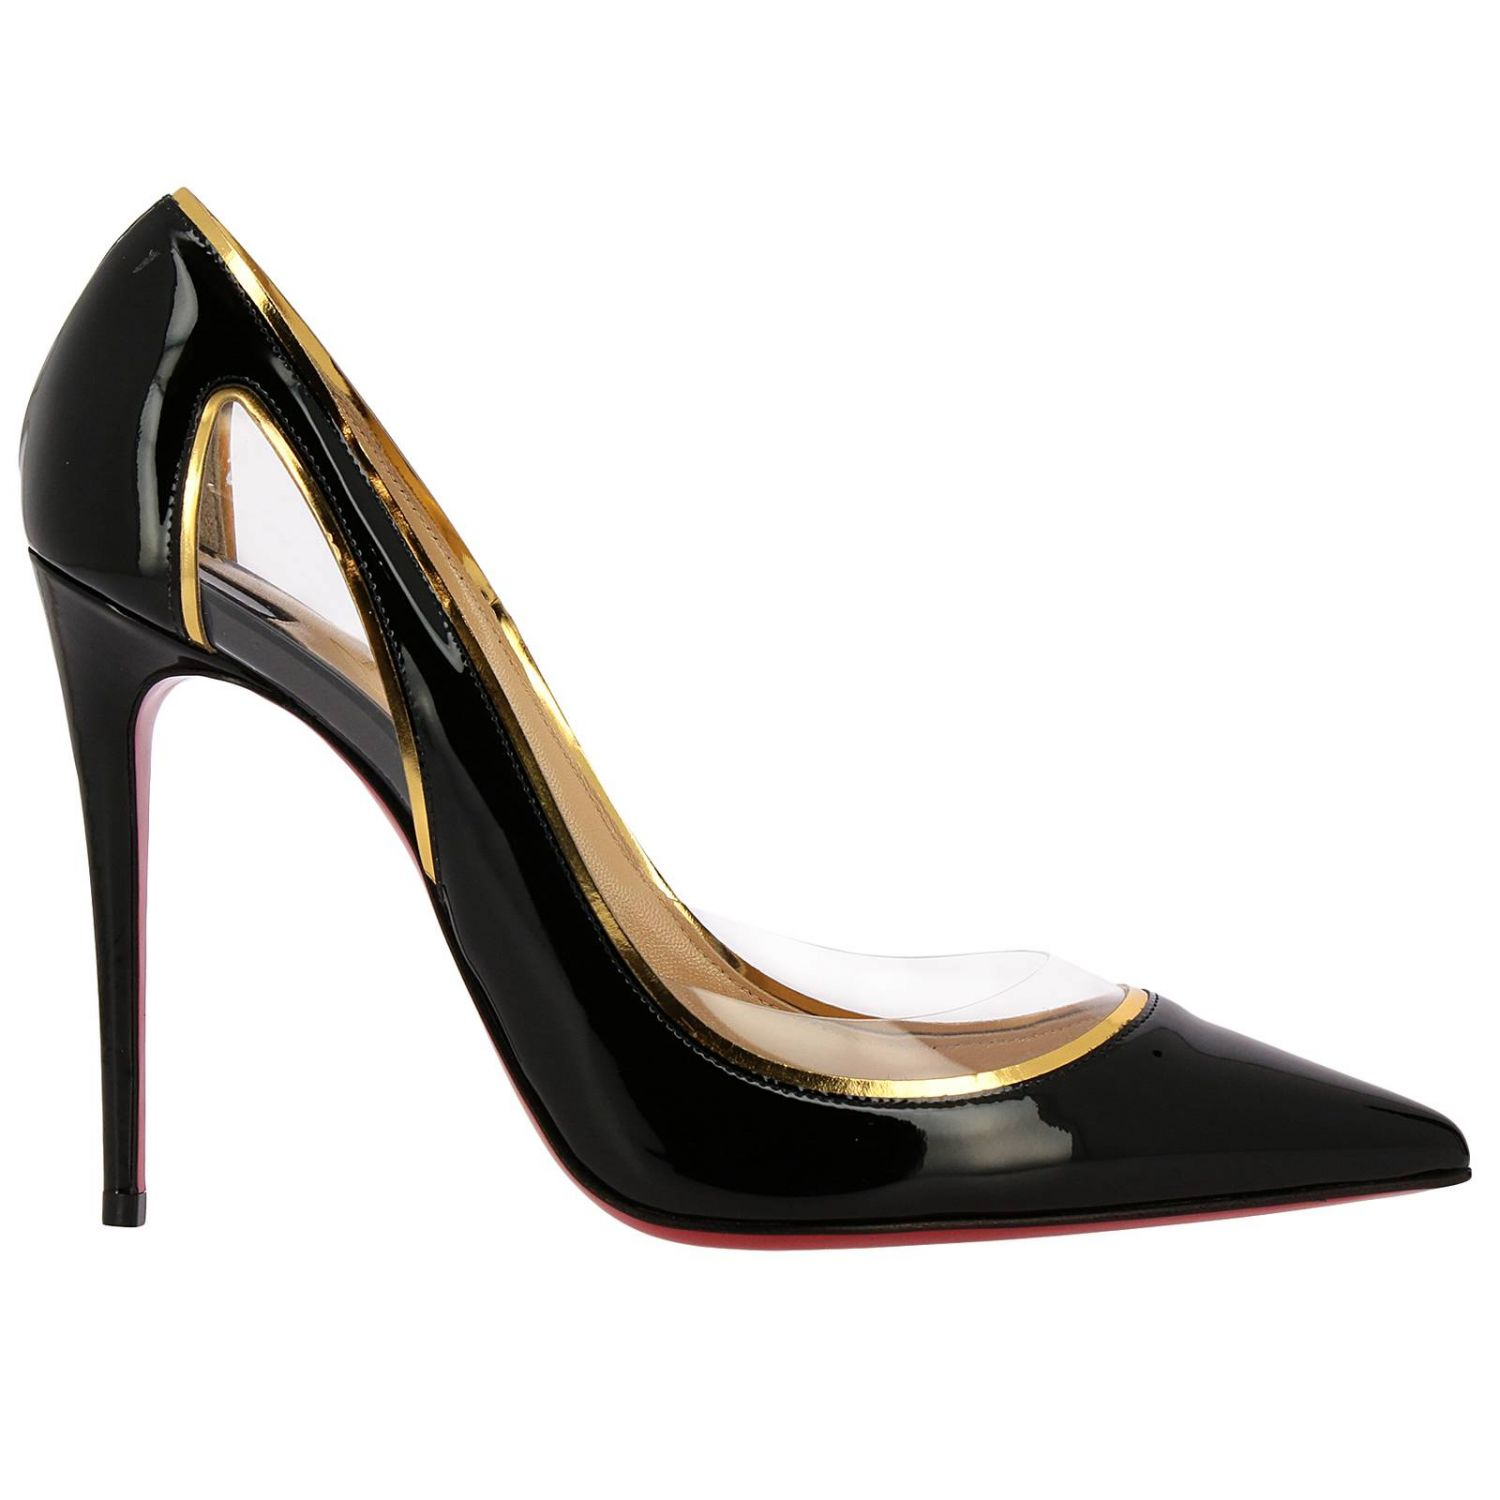 Chaussures femme Christian Louboutin